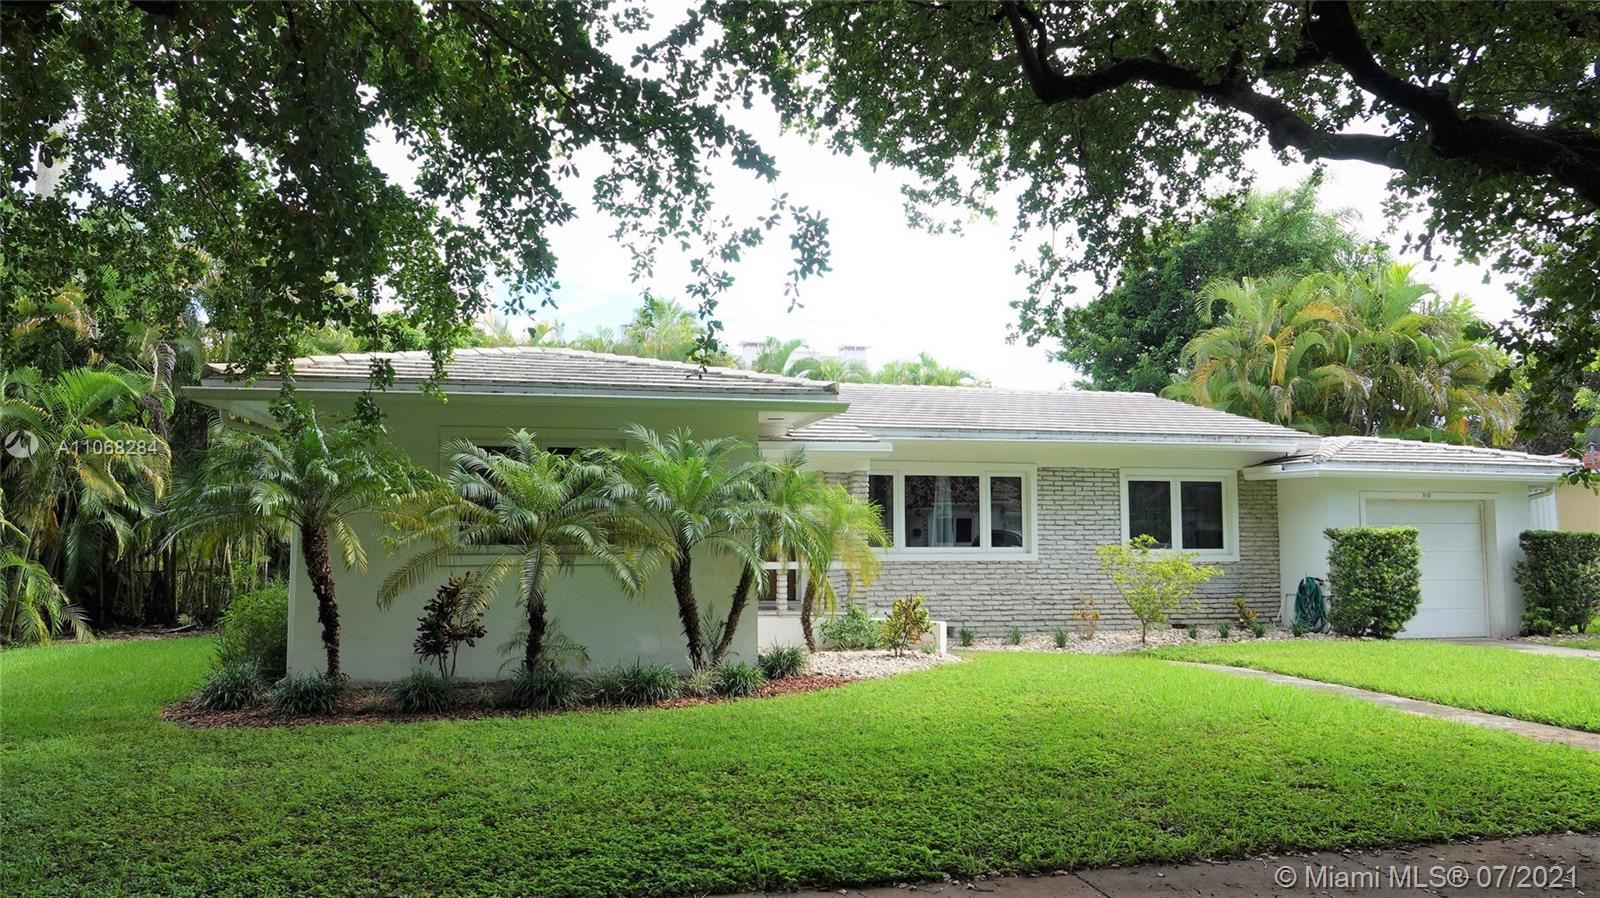 Photo of 310 Candia Ave, Coral Gables, FL 33134 (MLS # A11068284)